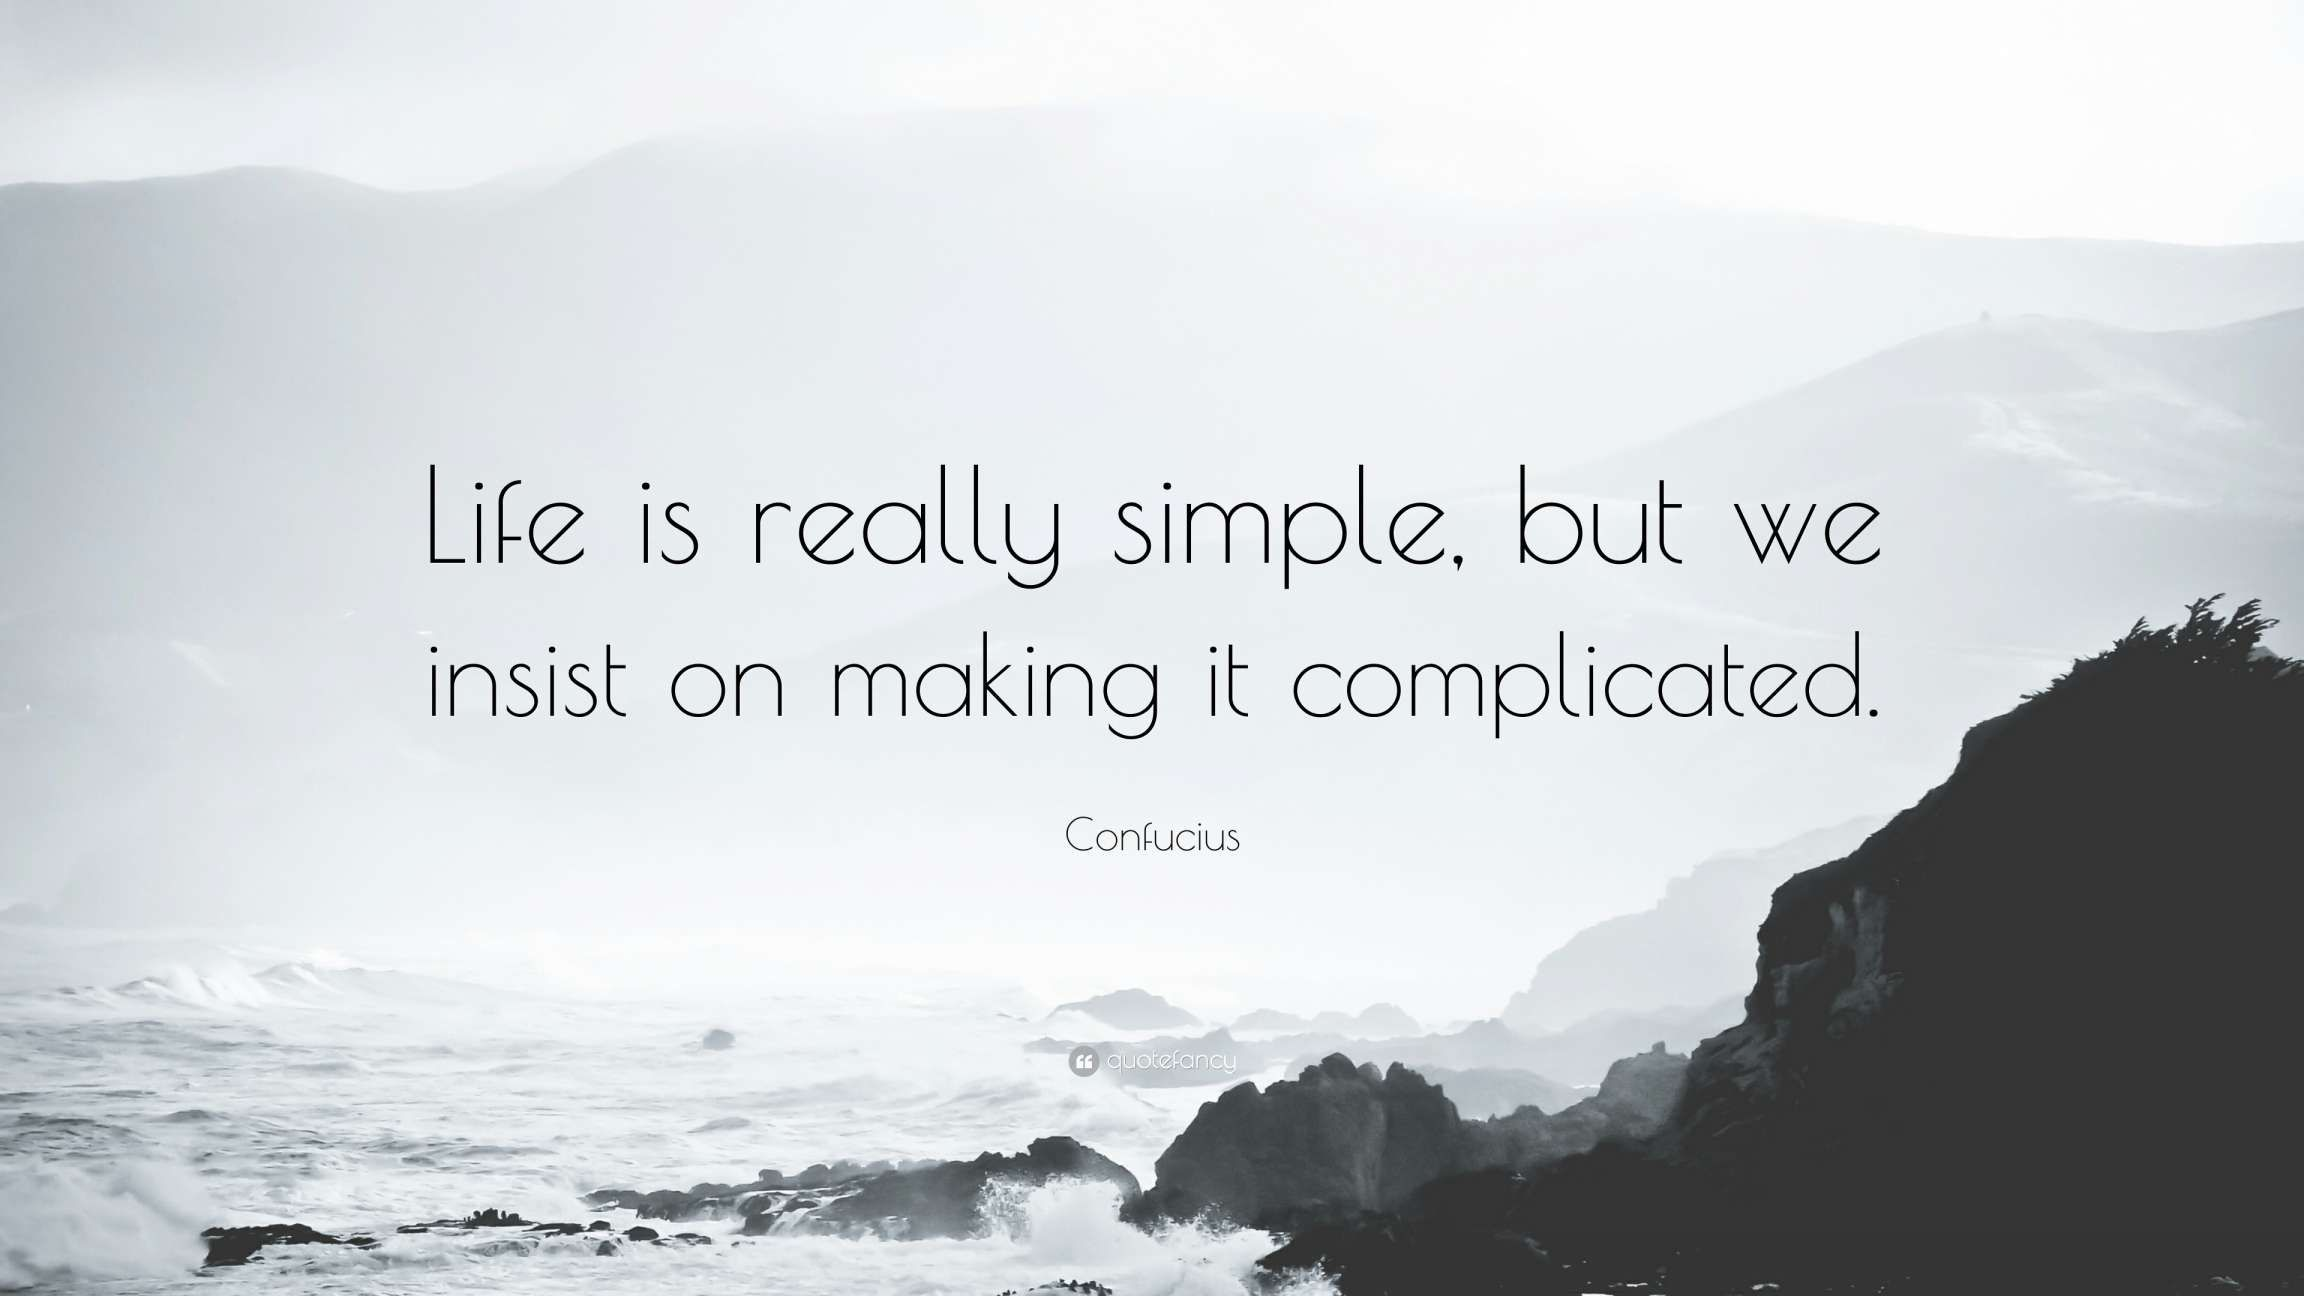 12 Confucius Quotes Life Is Really Simple Quotes By Emotions Life Quotes Confucius Quotes